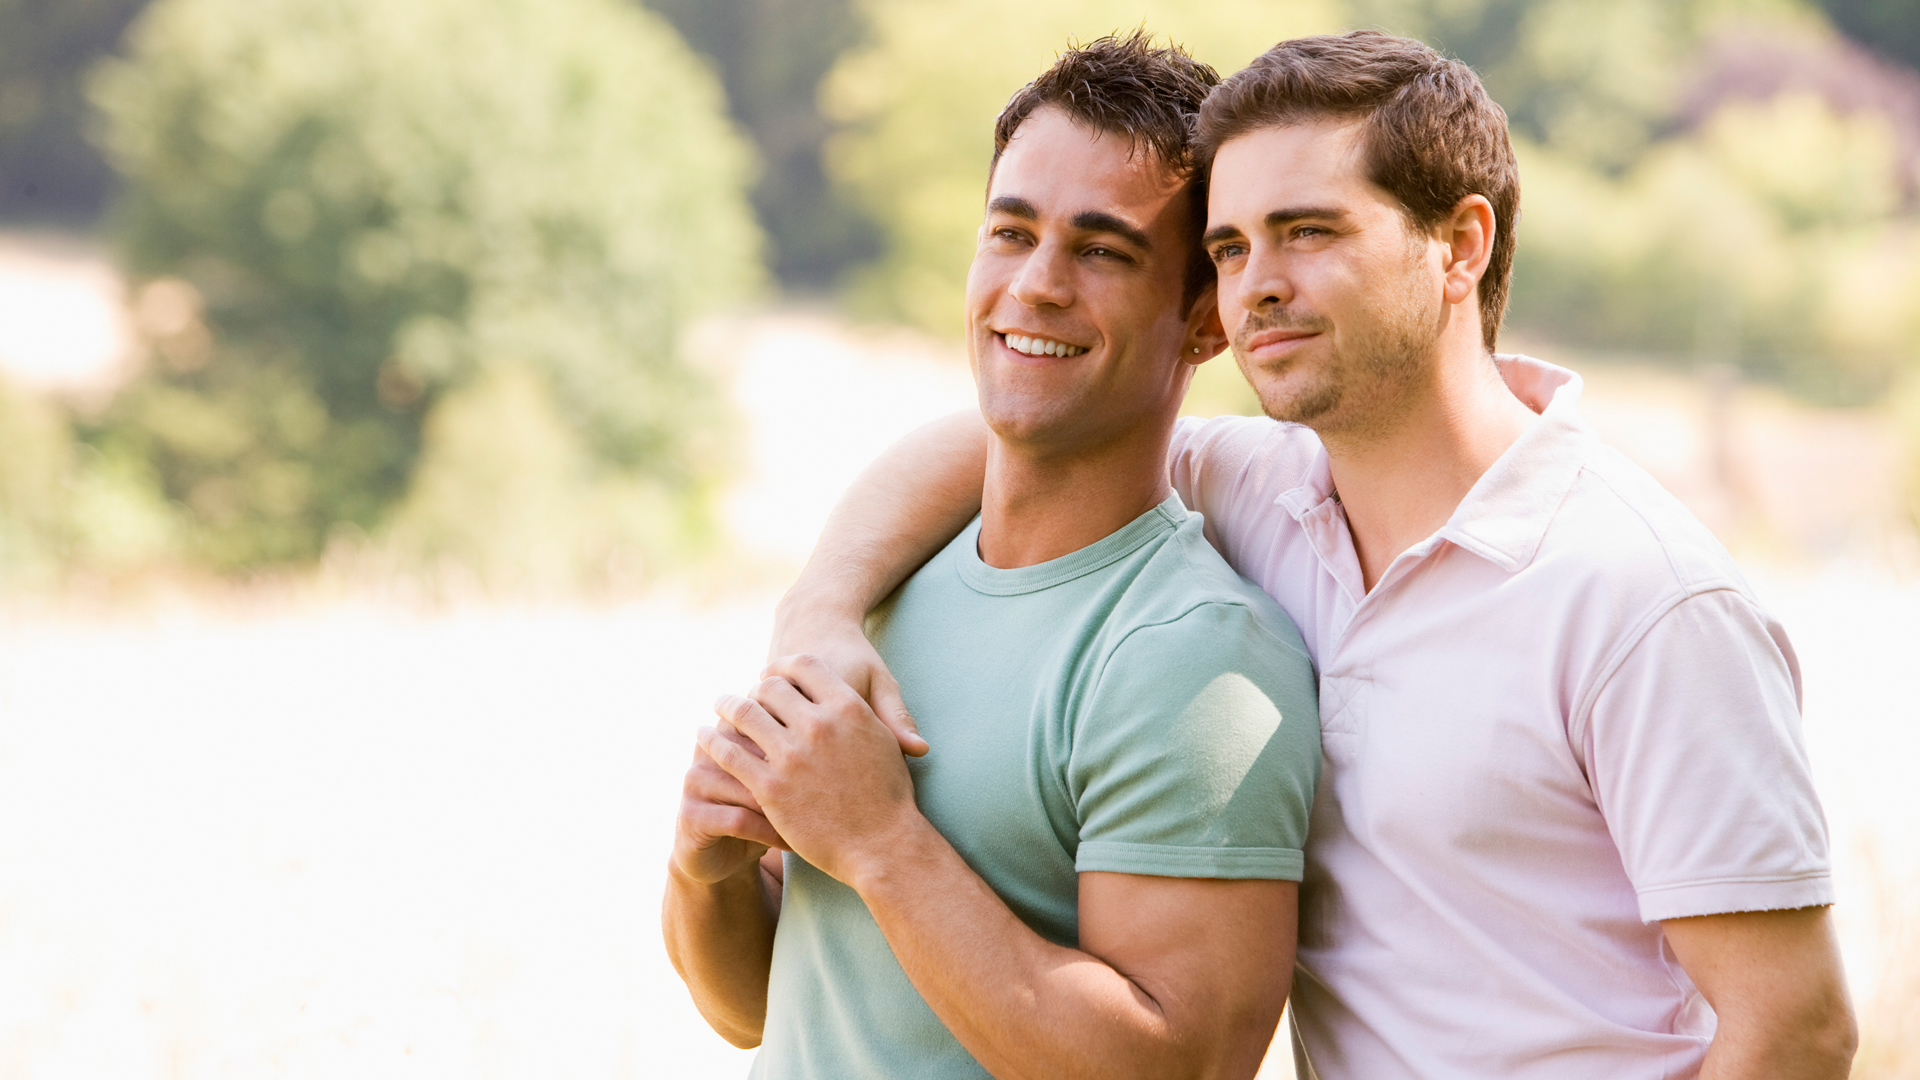 free gay male dating site in los angeles